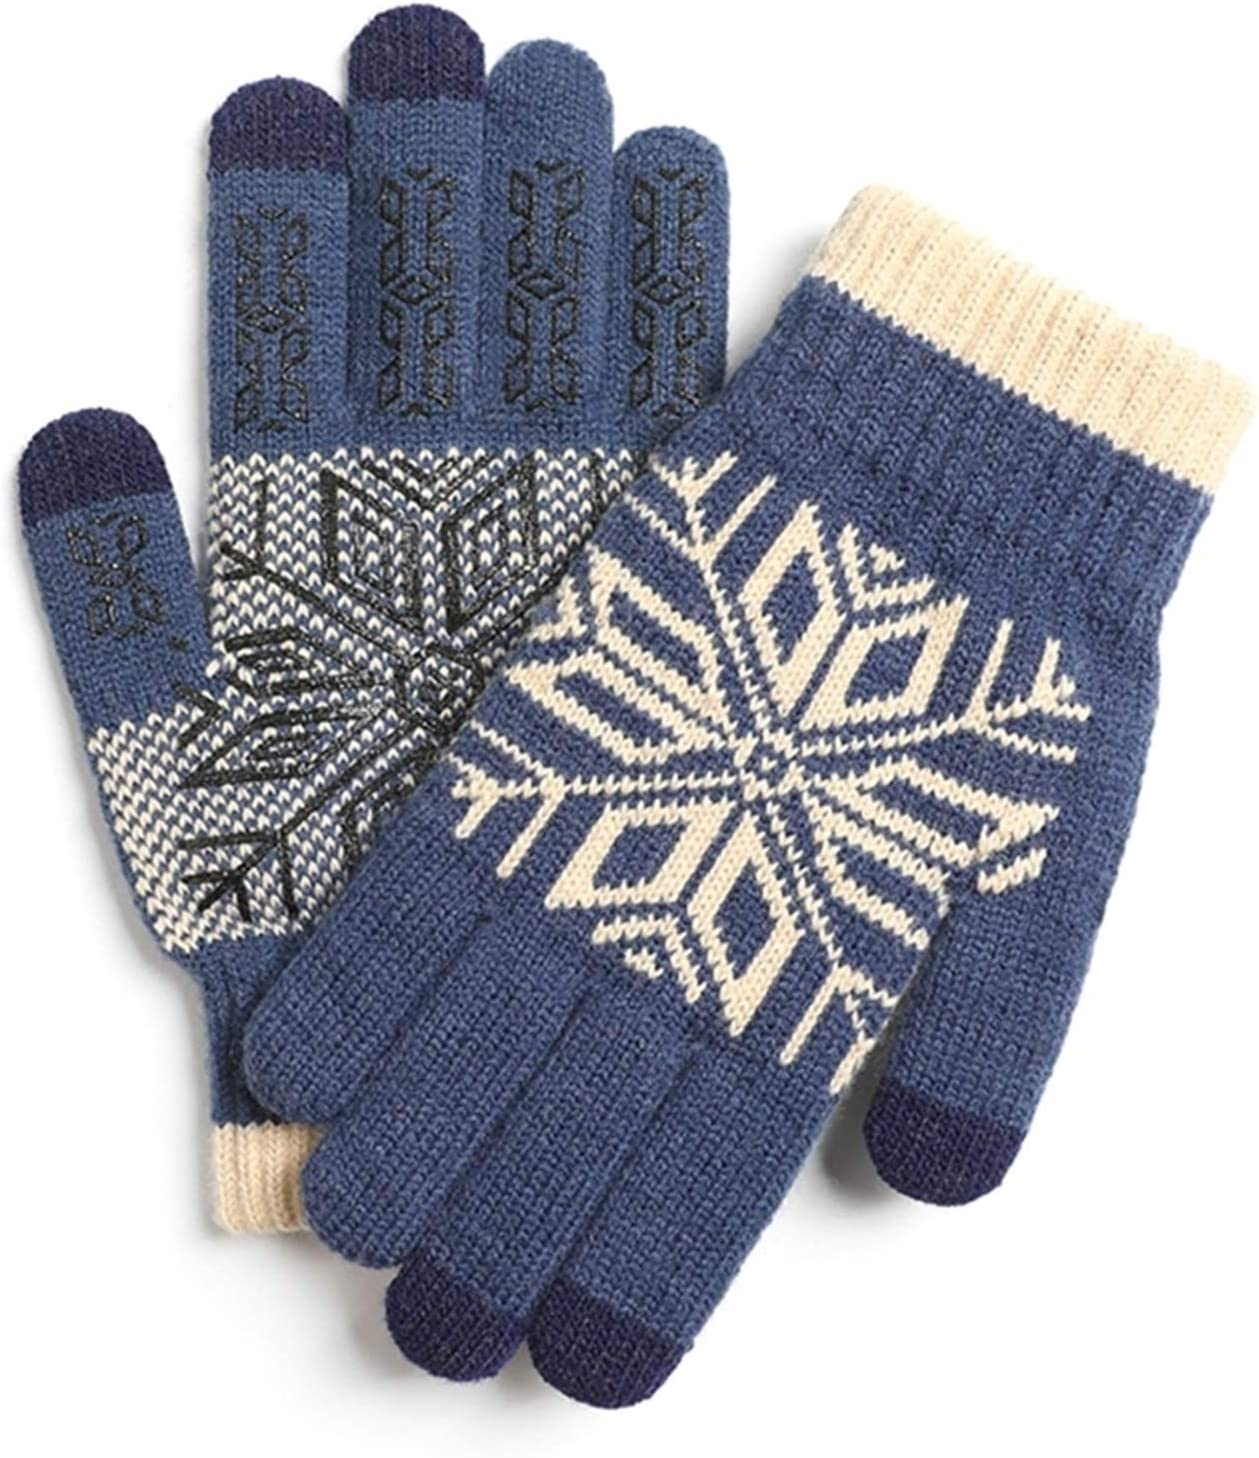 Gloves Men Winter Touch Screen Snowflake Knitted Warm Gloves Soft Plush Lining Elastic Cuff Mittens Warm (Color : 3, Gloves Size : Large)